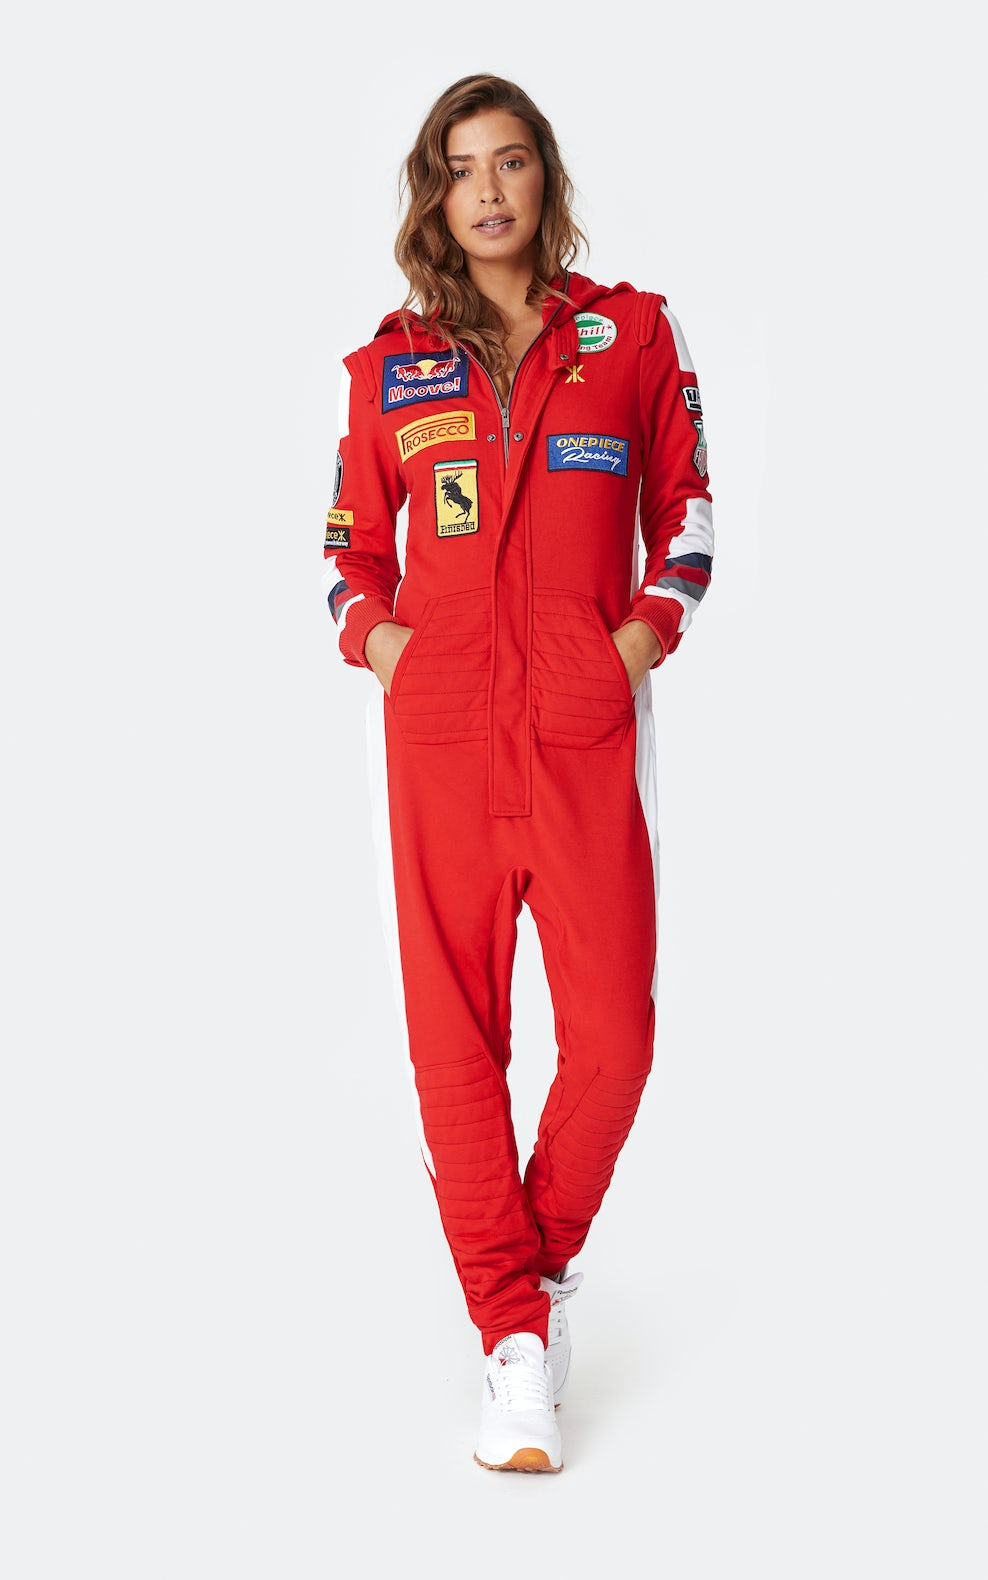 popular style 2019 best sell 60% clearance Formula Onepiece Jumpsuit Red